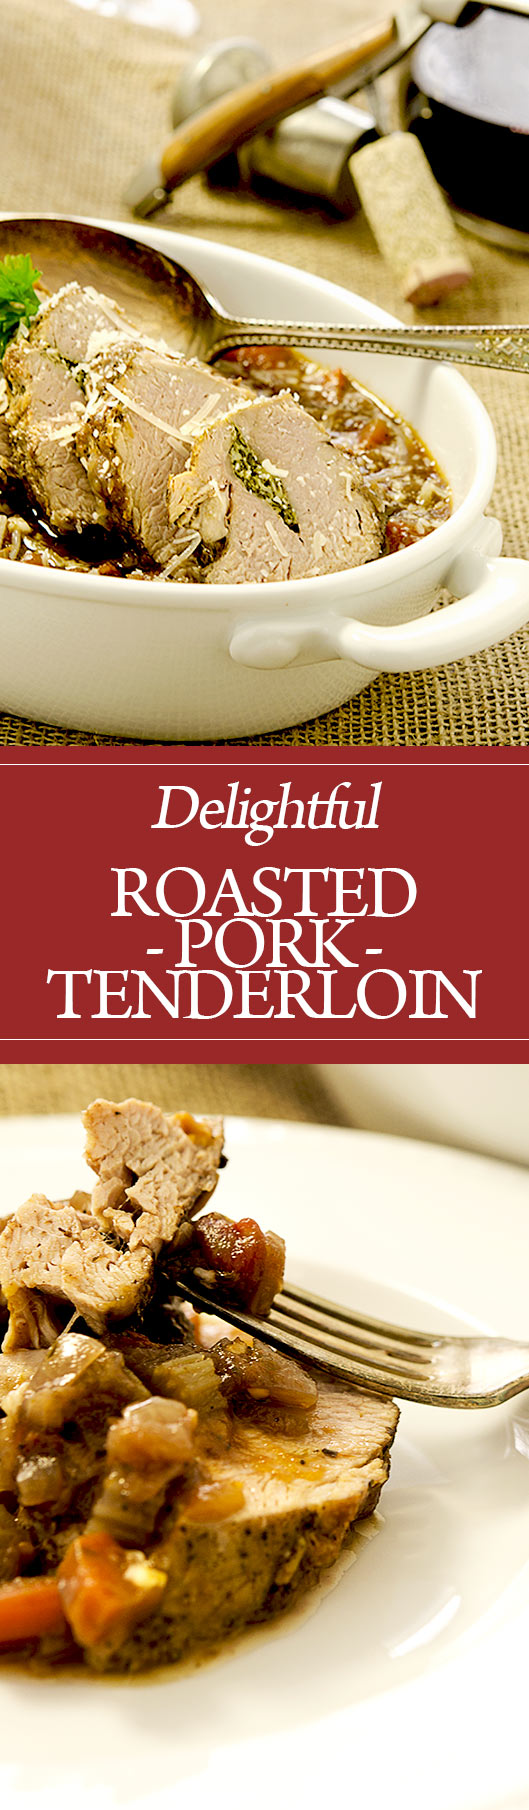 What a wonderful roasted pork tenderloin recipe. Filled with huge flavors like garlic, parsley, rosemary and more, you'll love serving this to family and friends.